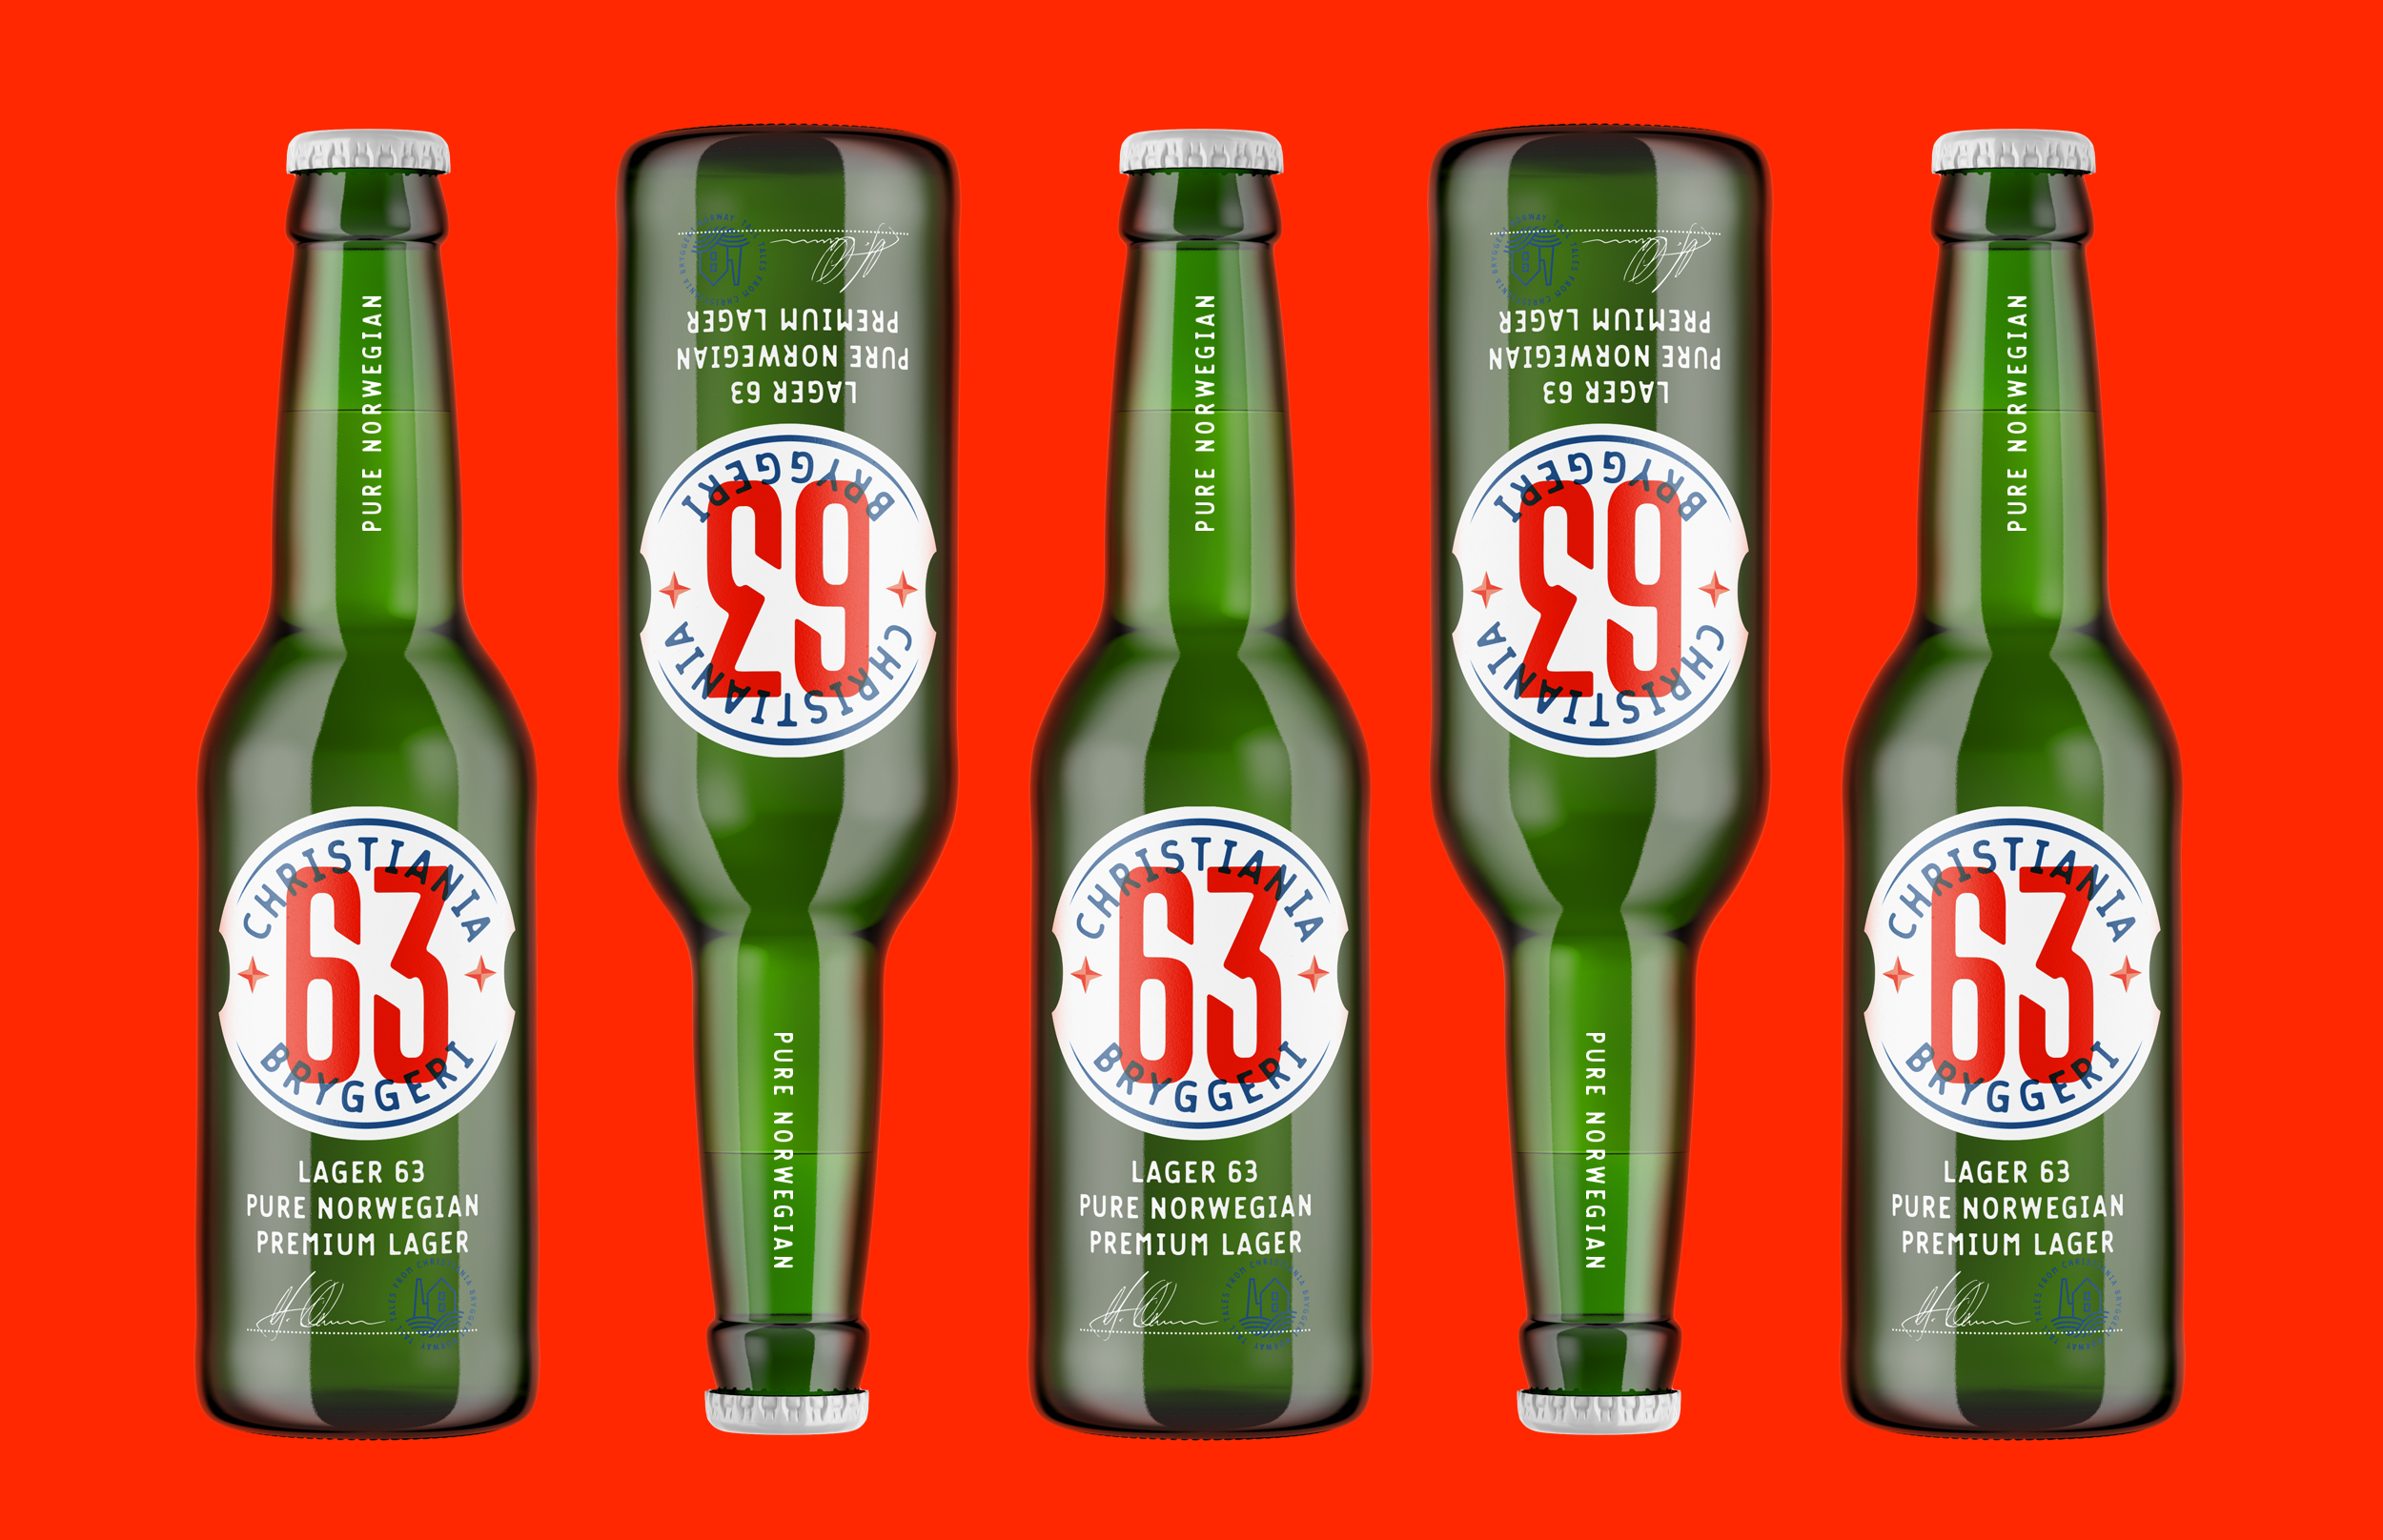 Lager 63 22